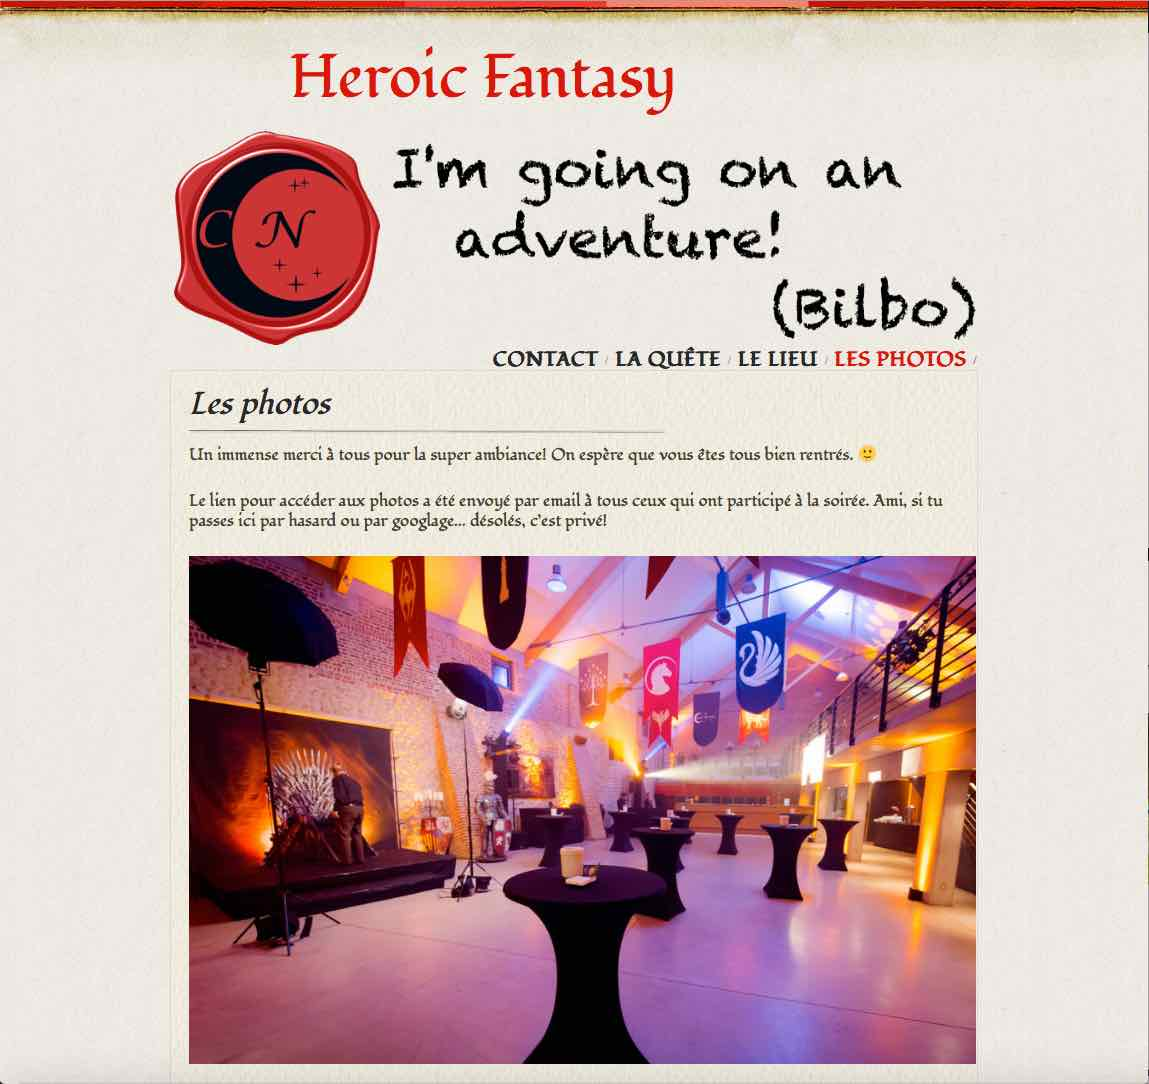 Website Heroic Fantasy